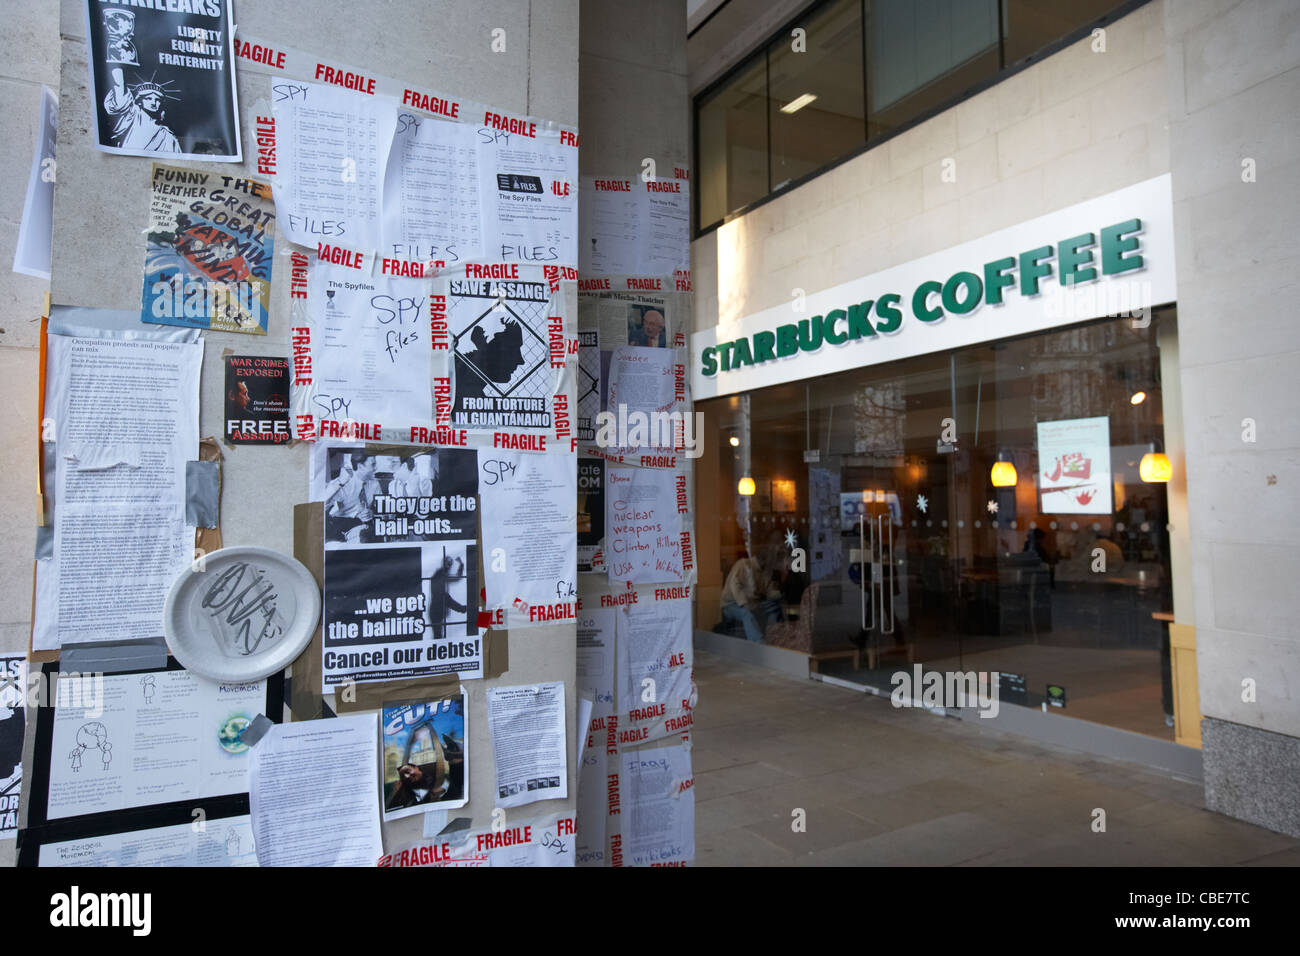 anti bailout and conspiracy occupy protest posters outside starbucks London England Uk United Kingdom - Stock Image